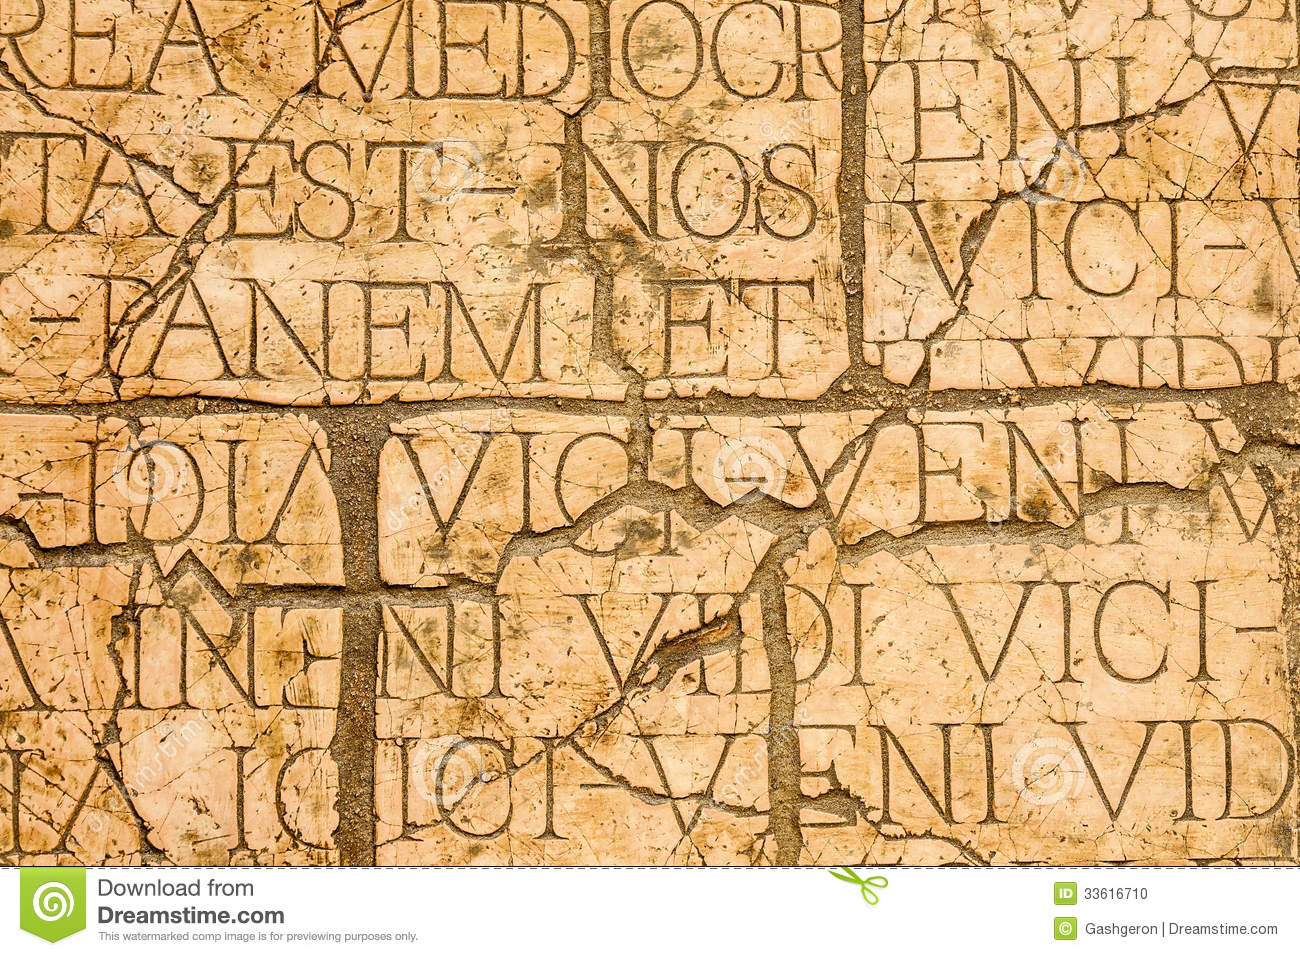 write a note on the greco-roman traditions of history-writing